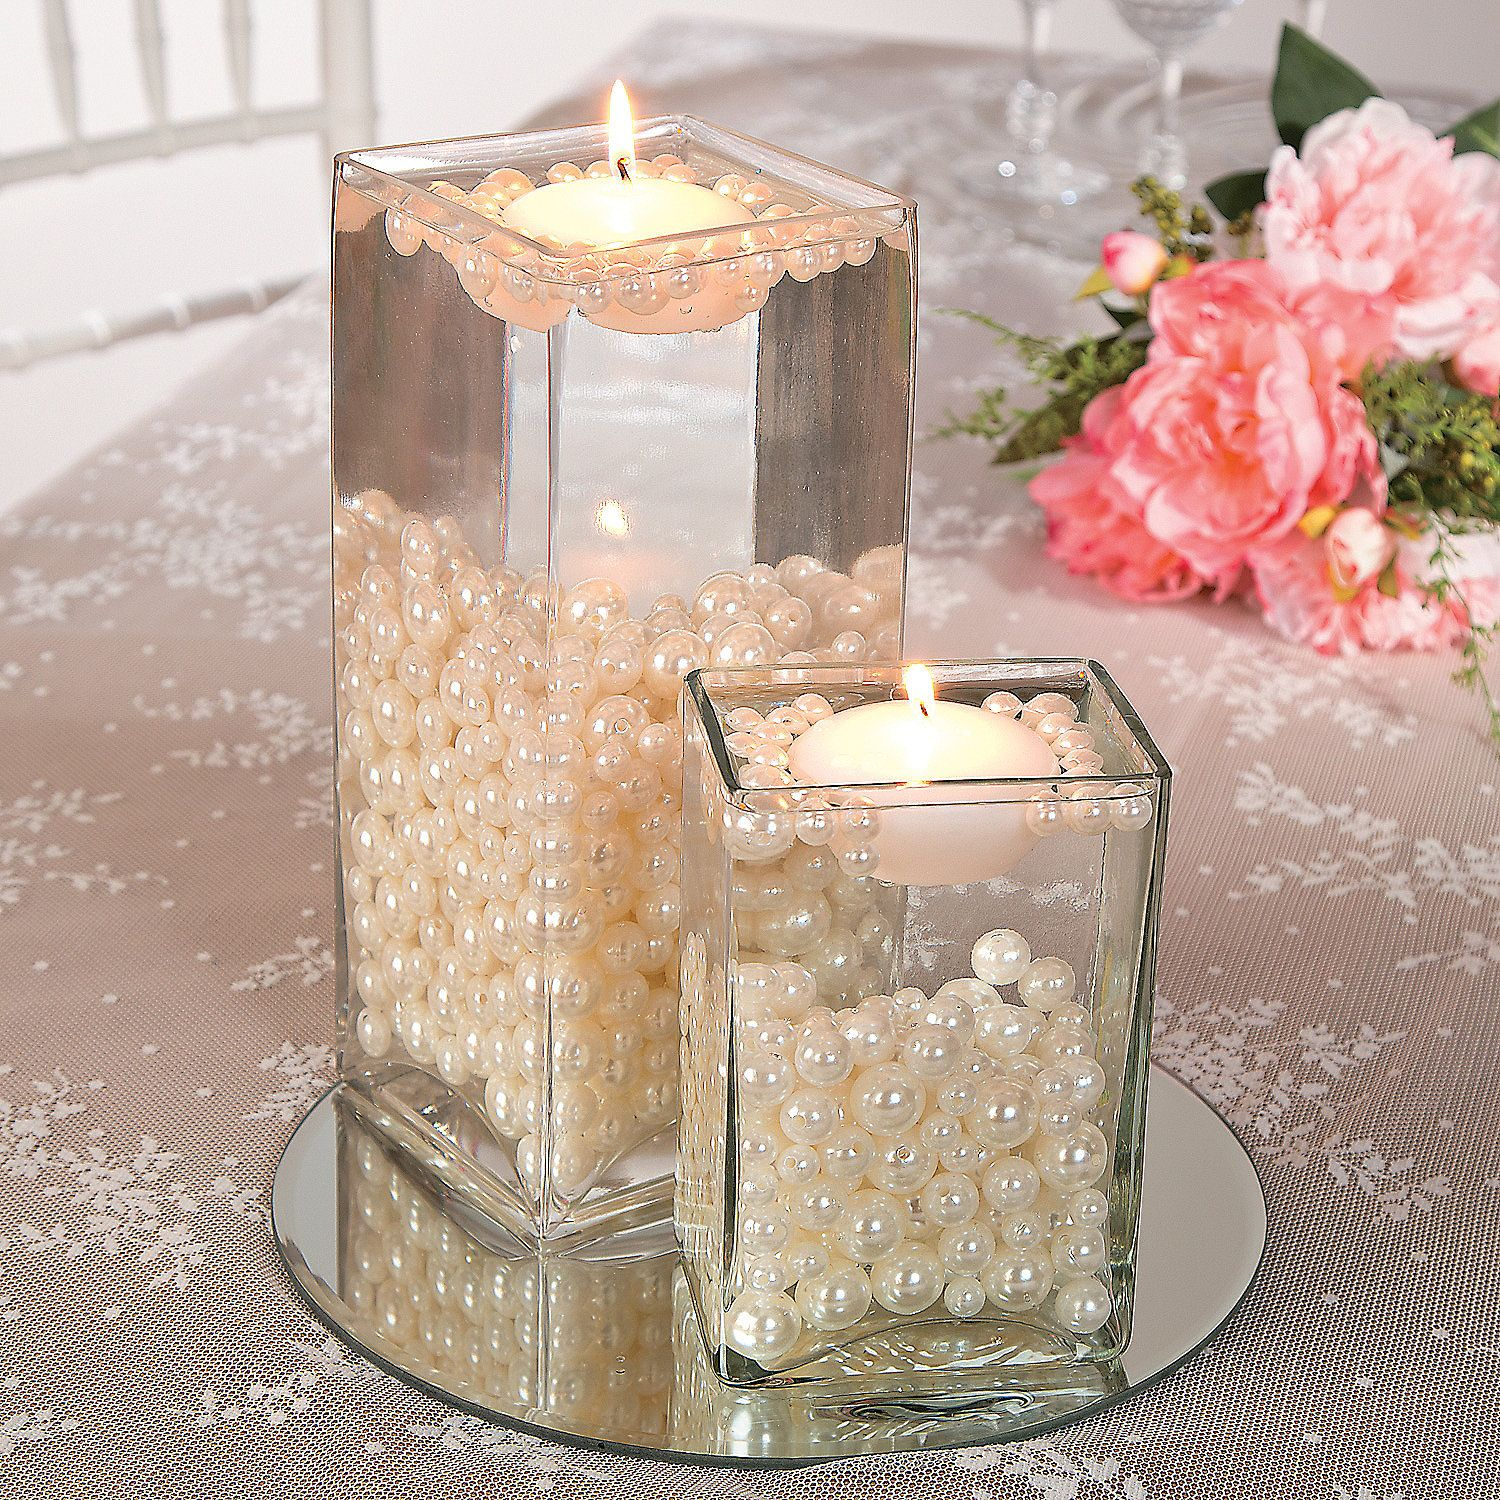 Simple Wedding Centerpieces Ideas: Easy Pearl Bead Centerpiece Idea